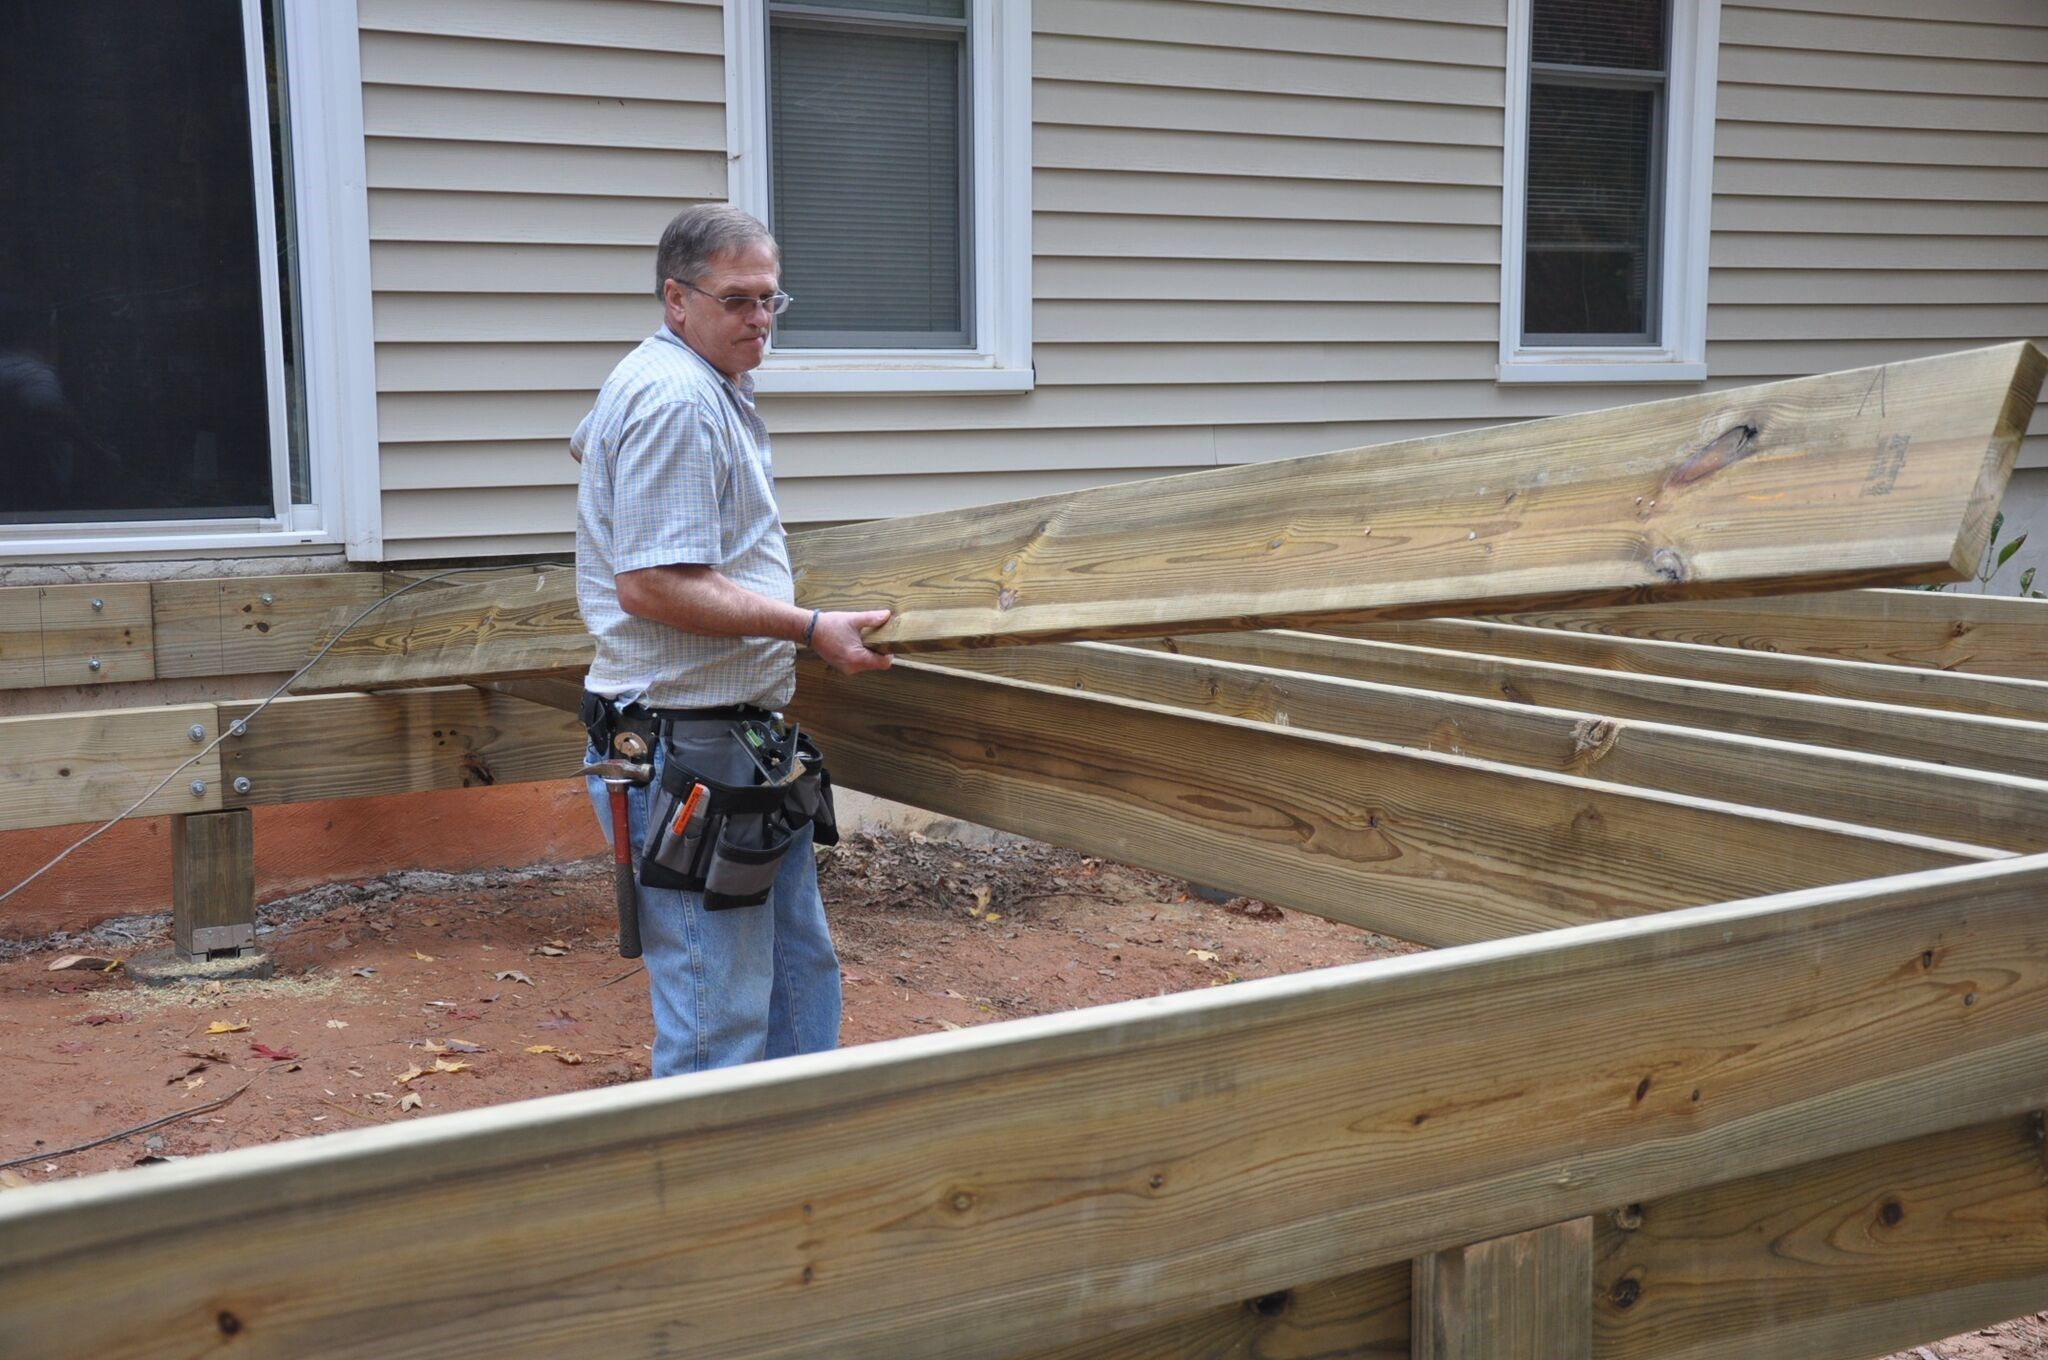 Decks.com. Deck Joist Sizing and Spacing